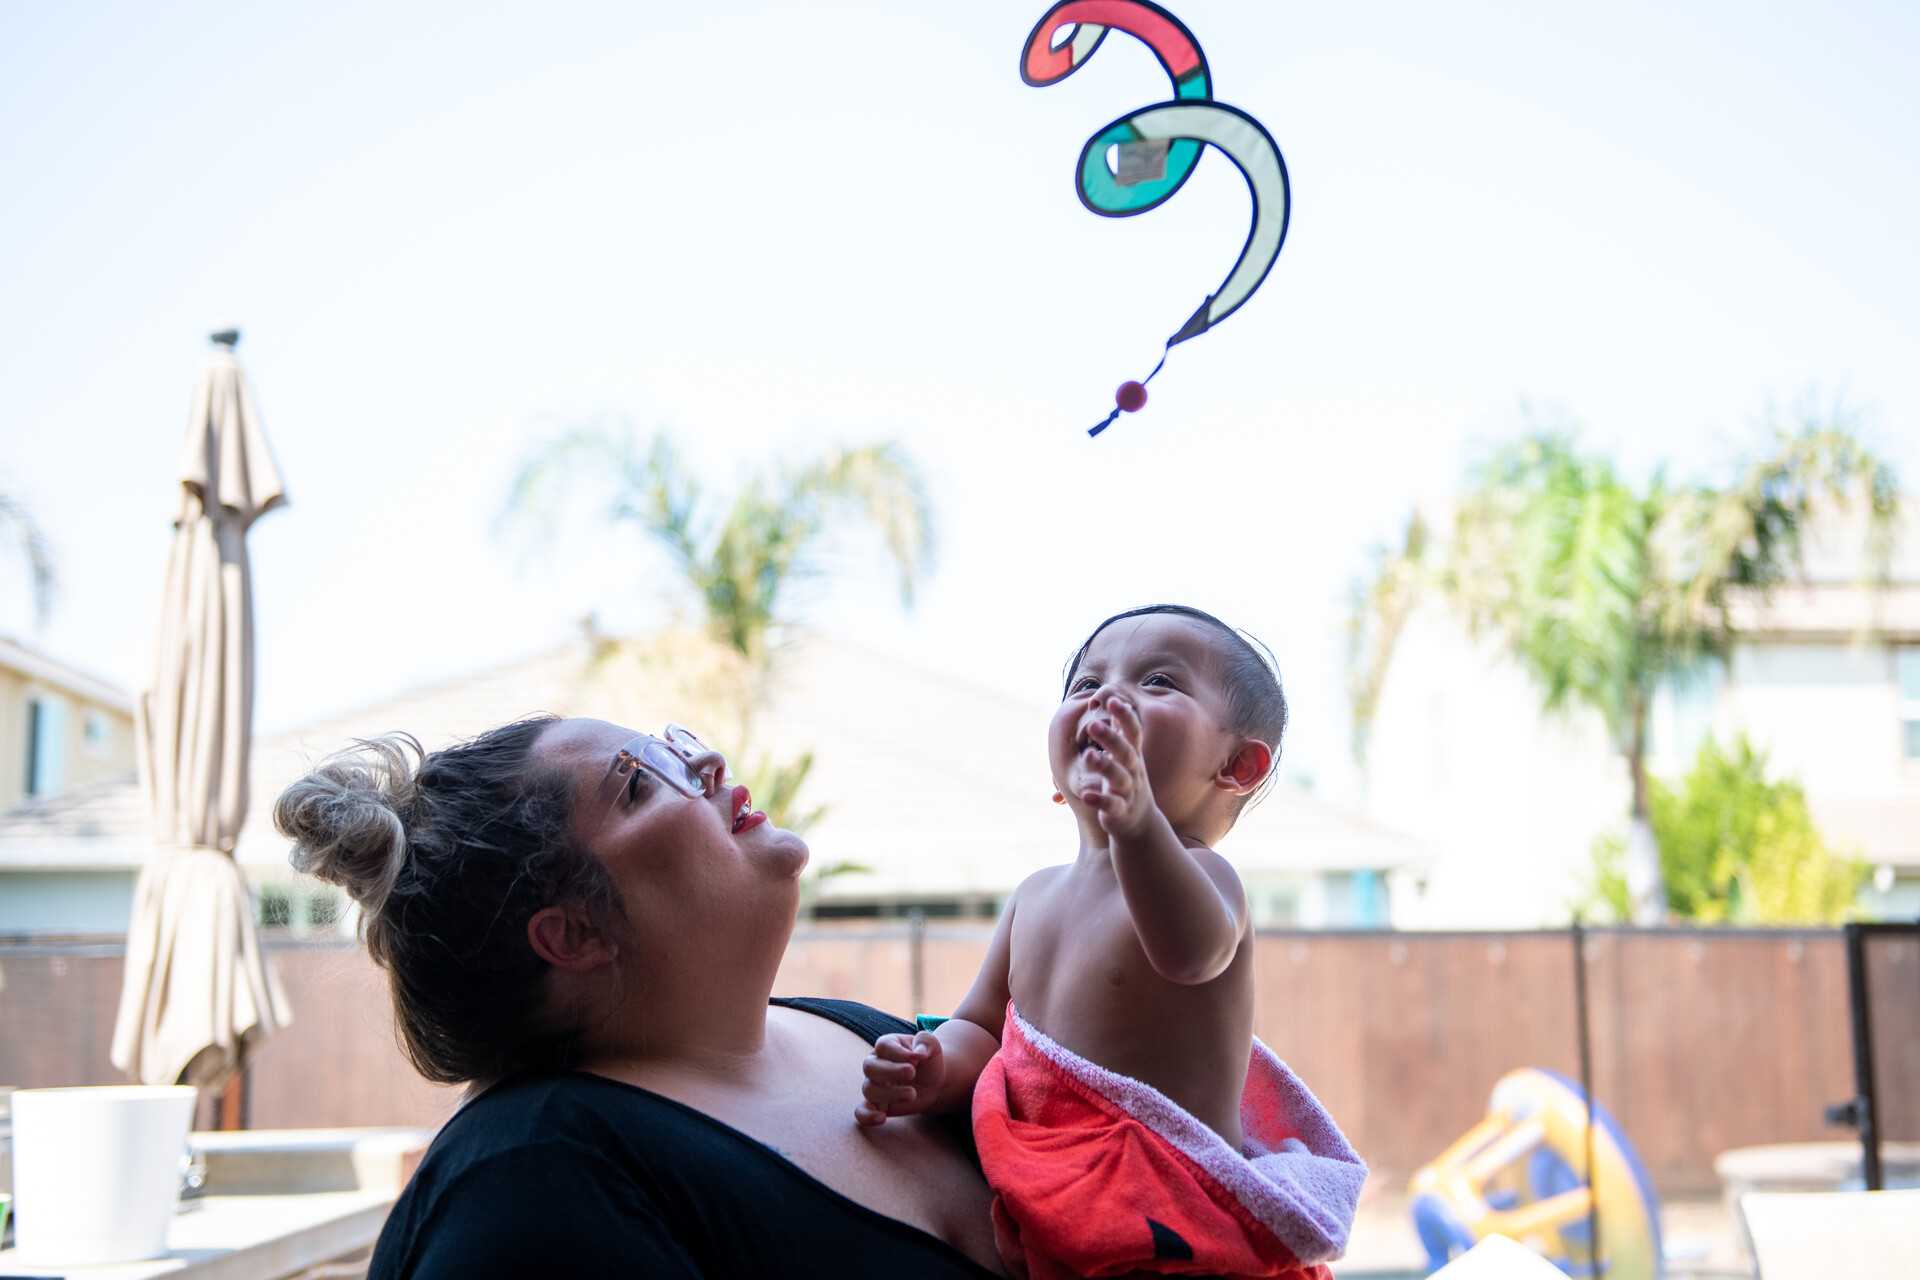 A parent carries their small child in their arms. Both have their bathing suits on and the child wears inflatable lifesavers as both are in the pool. Both are looking up at the sky. Behind them is a backyard and palm trees.